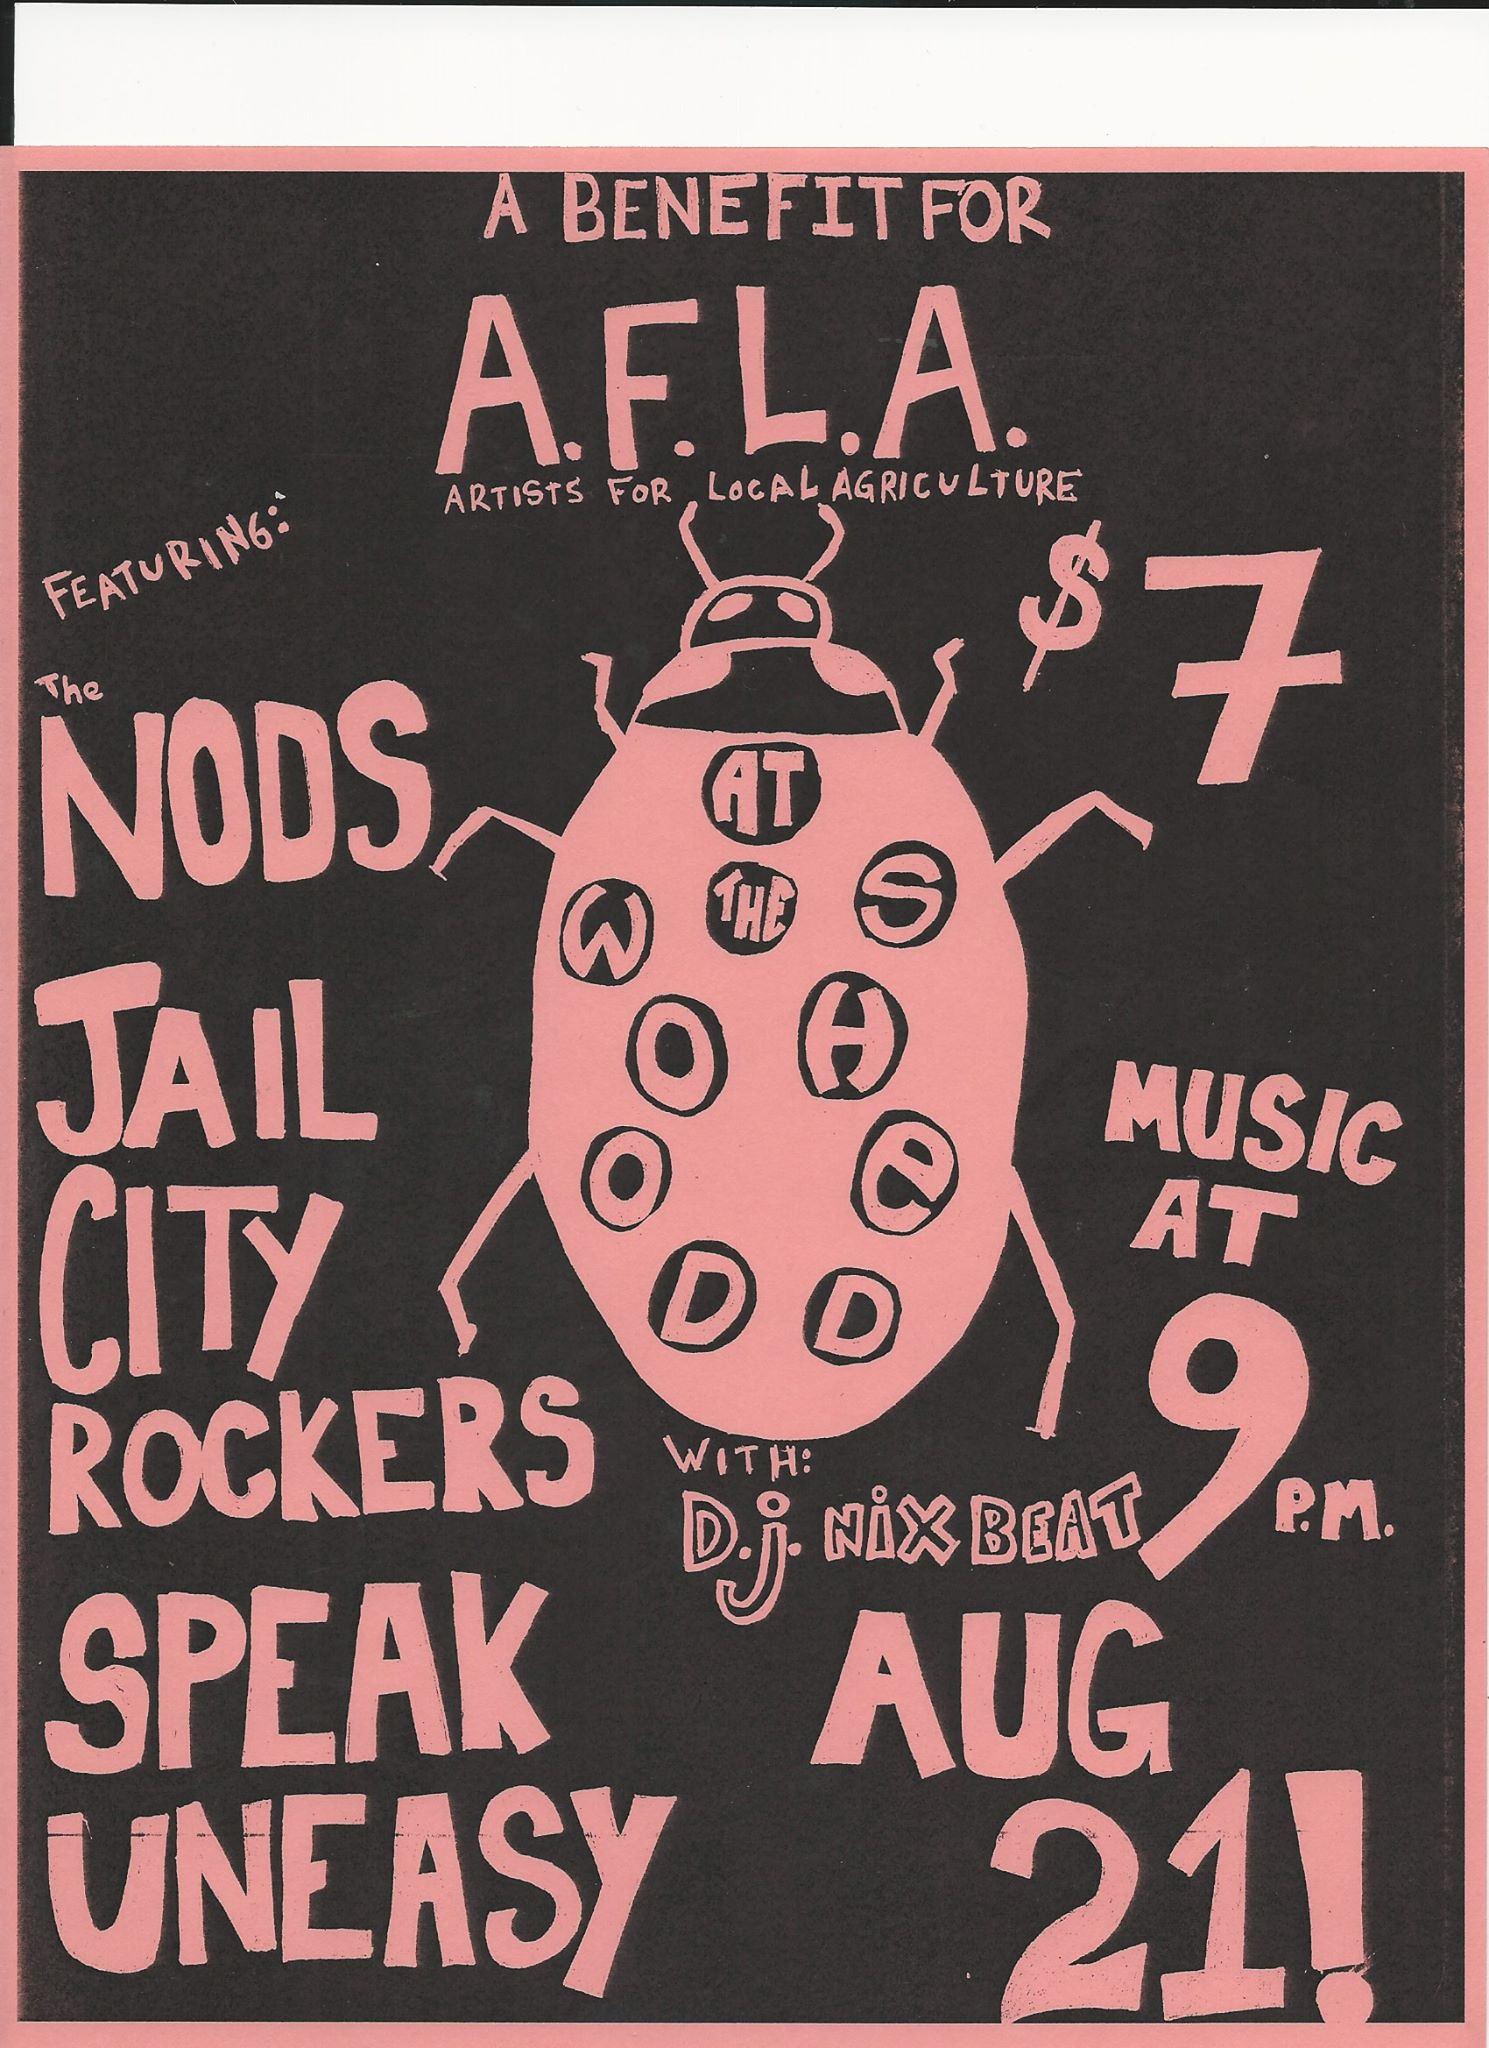 Rock for Urban Agriculture with A.F.L.A: Featuring The Nods, Jail City Rockers, Speak Uneasy, and D.J. Nix Beat.